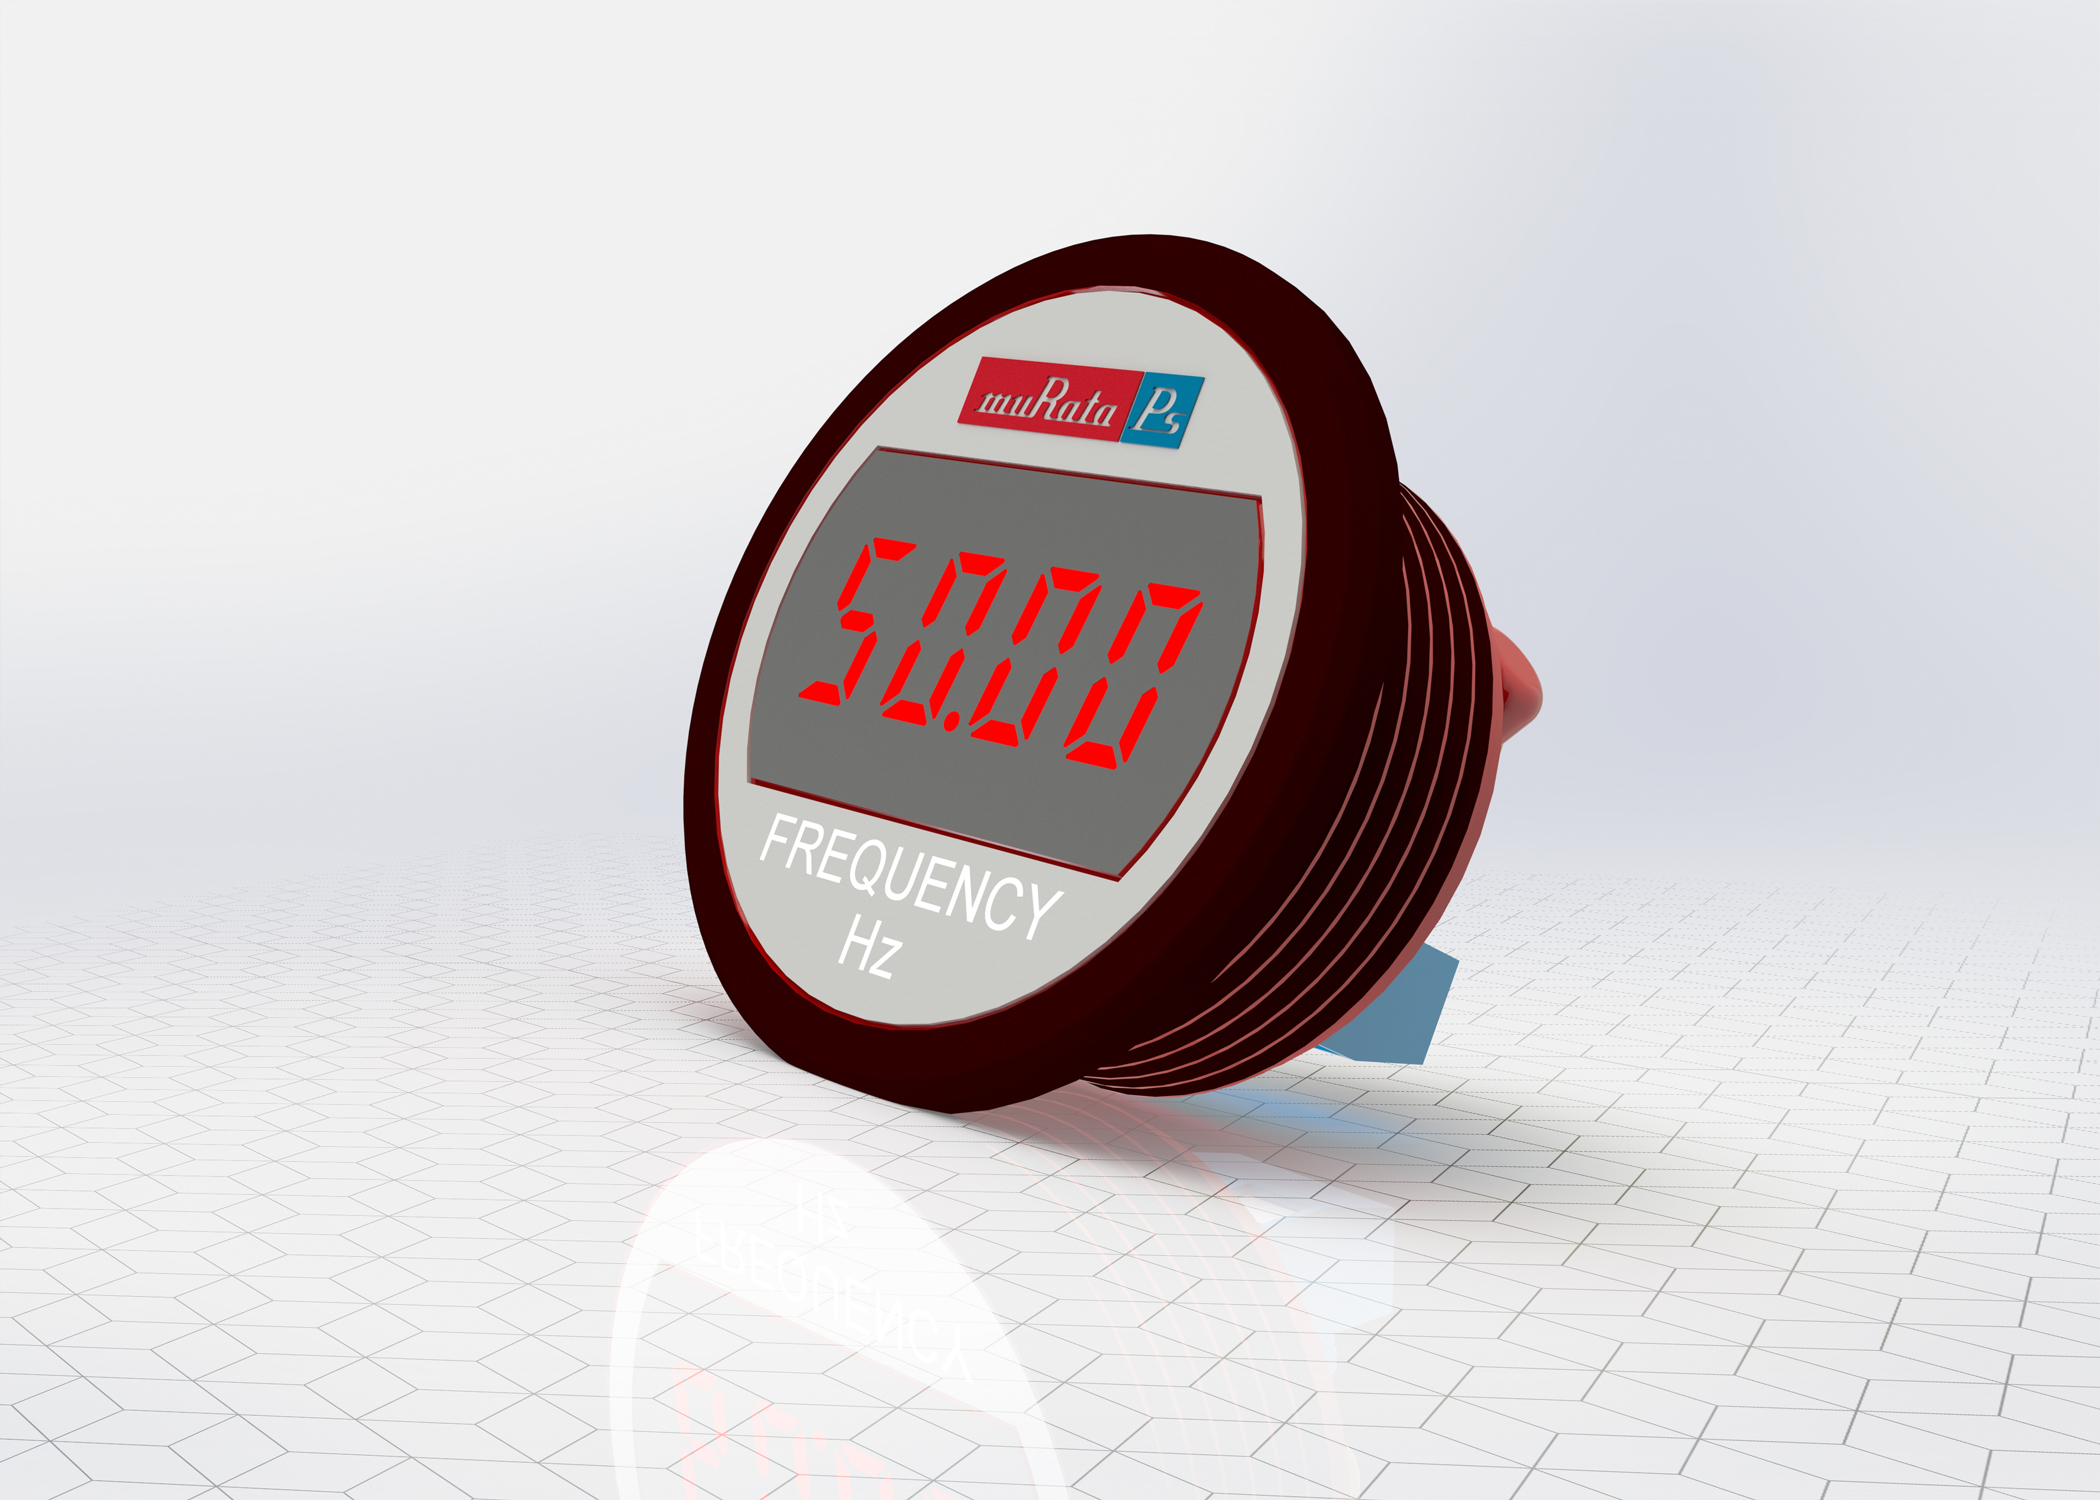 Self Powered Led Meter Displays Ac Line Frequency Engineer Live Power Monitor With Display Miniature Digital Panel Monitors From Murata Solutions Designed To Measure And Mains Frequencies In The Range Of